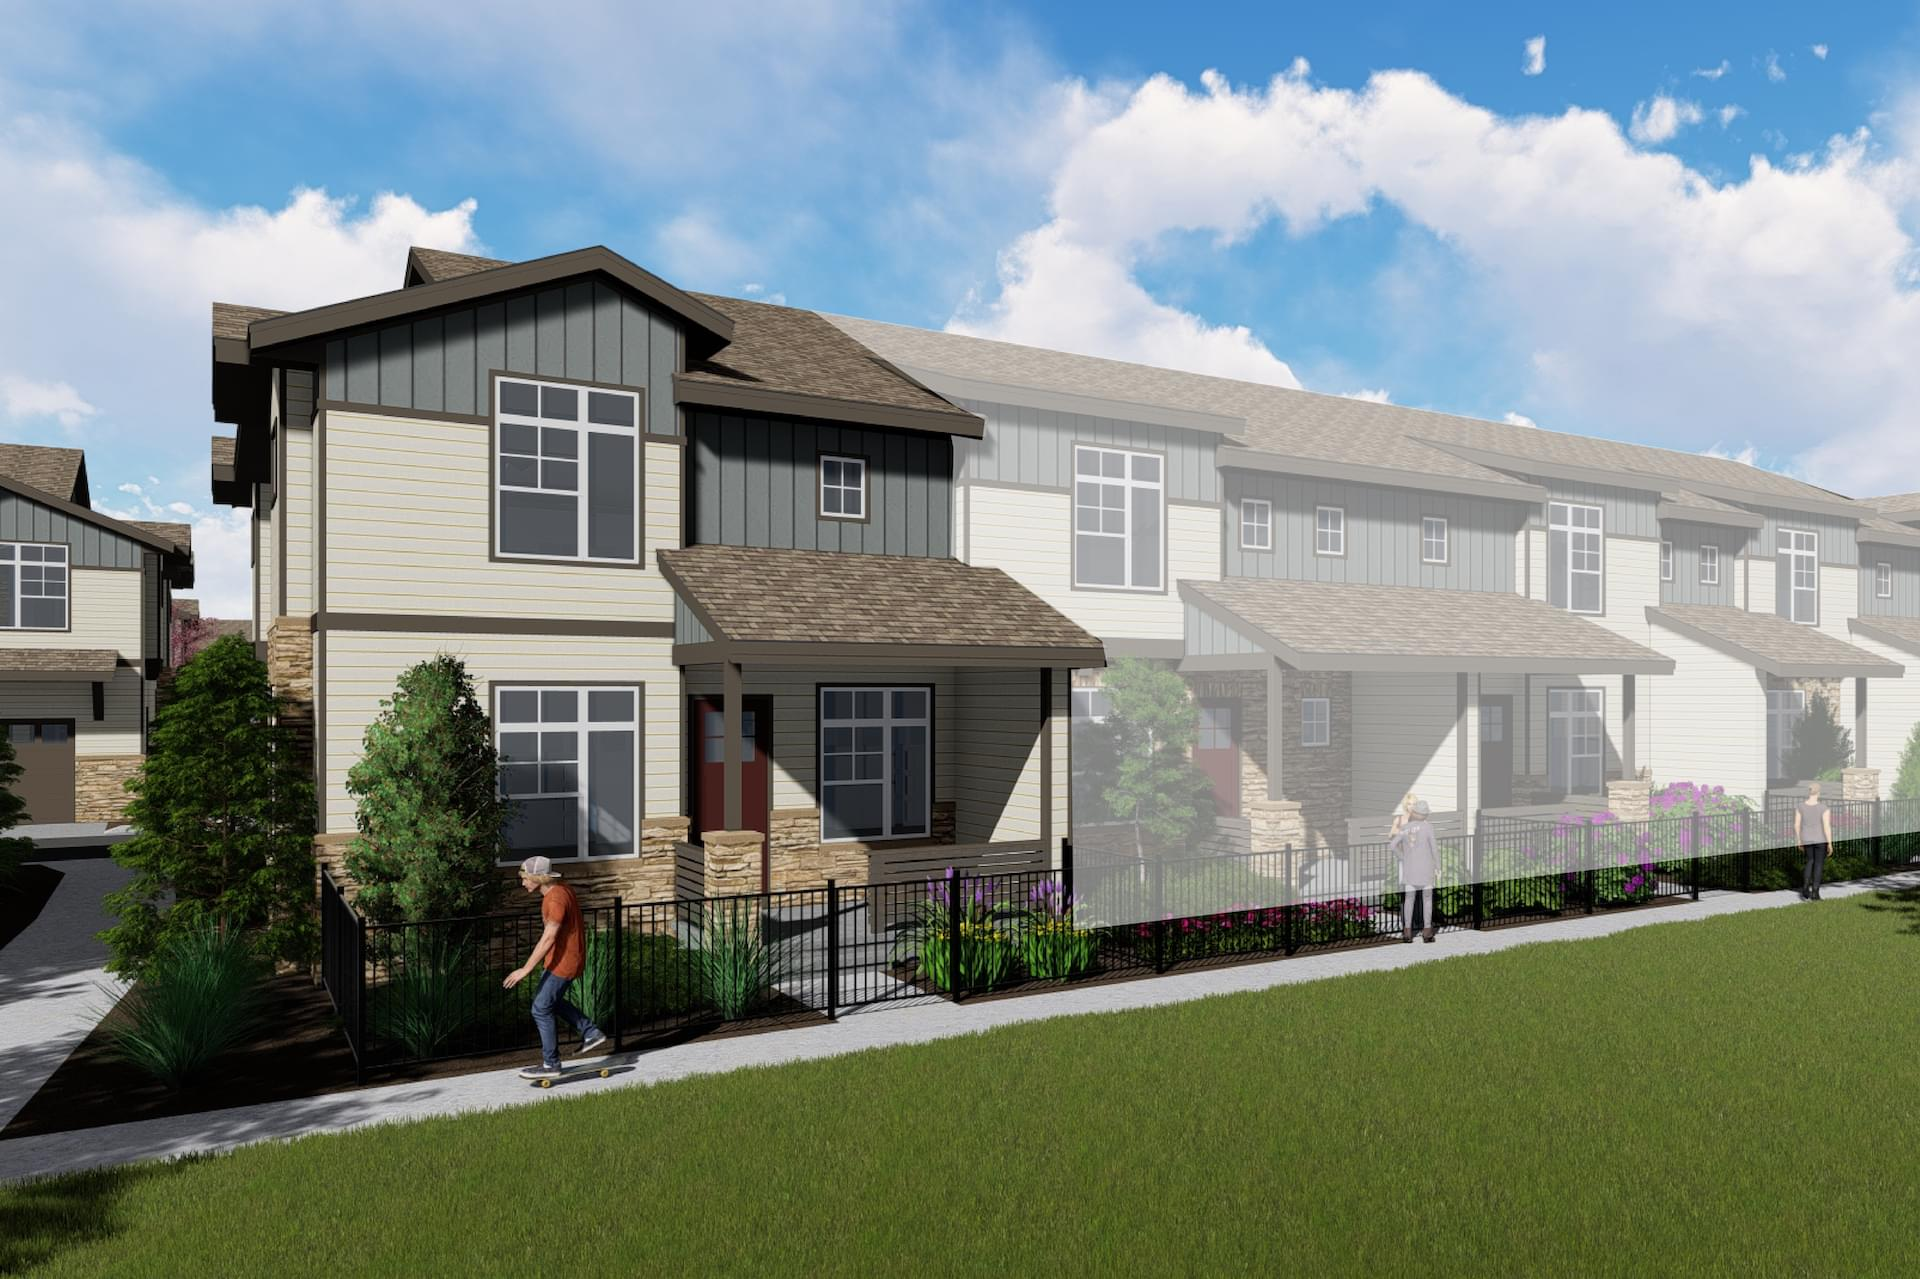 3br New Home in Loveland, CO